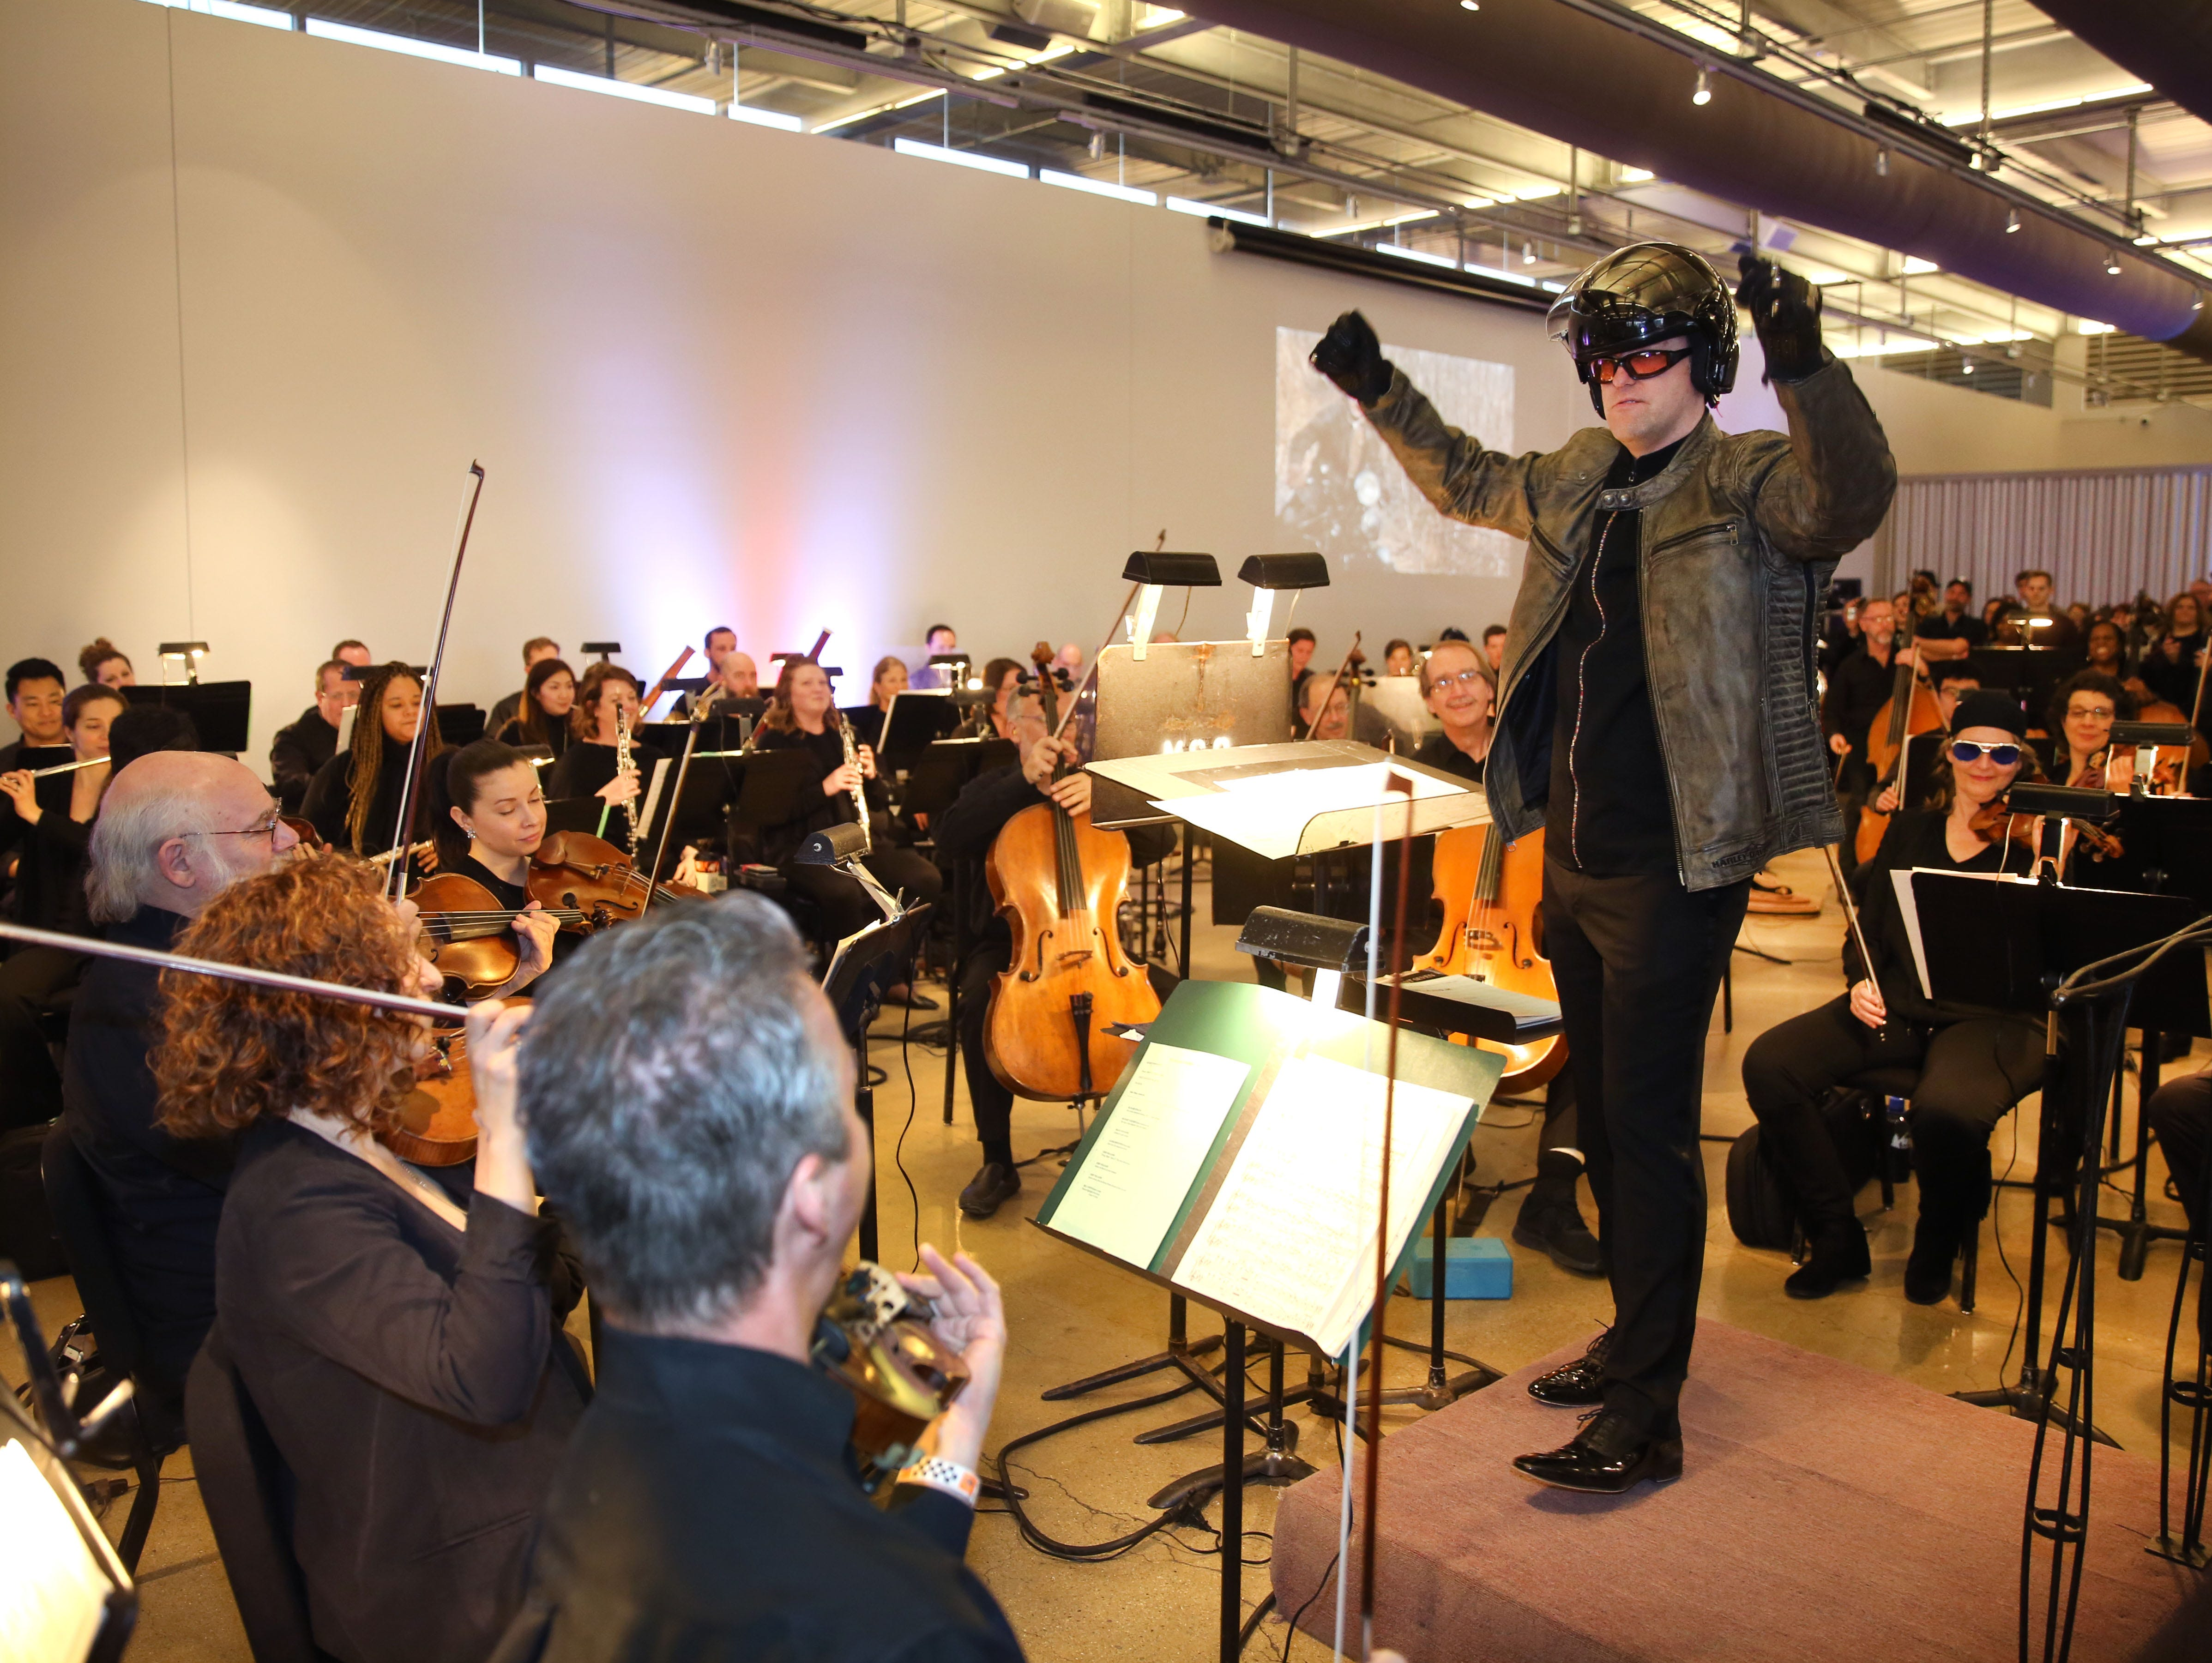 Decked out in gear, Yaniv Dinur conducts the Milwaukee Symphony during a Secret Symphony performance Sunday at the Harley-Davidson Museum.